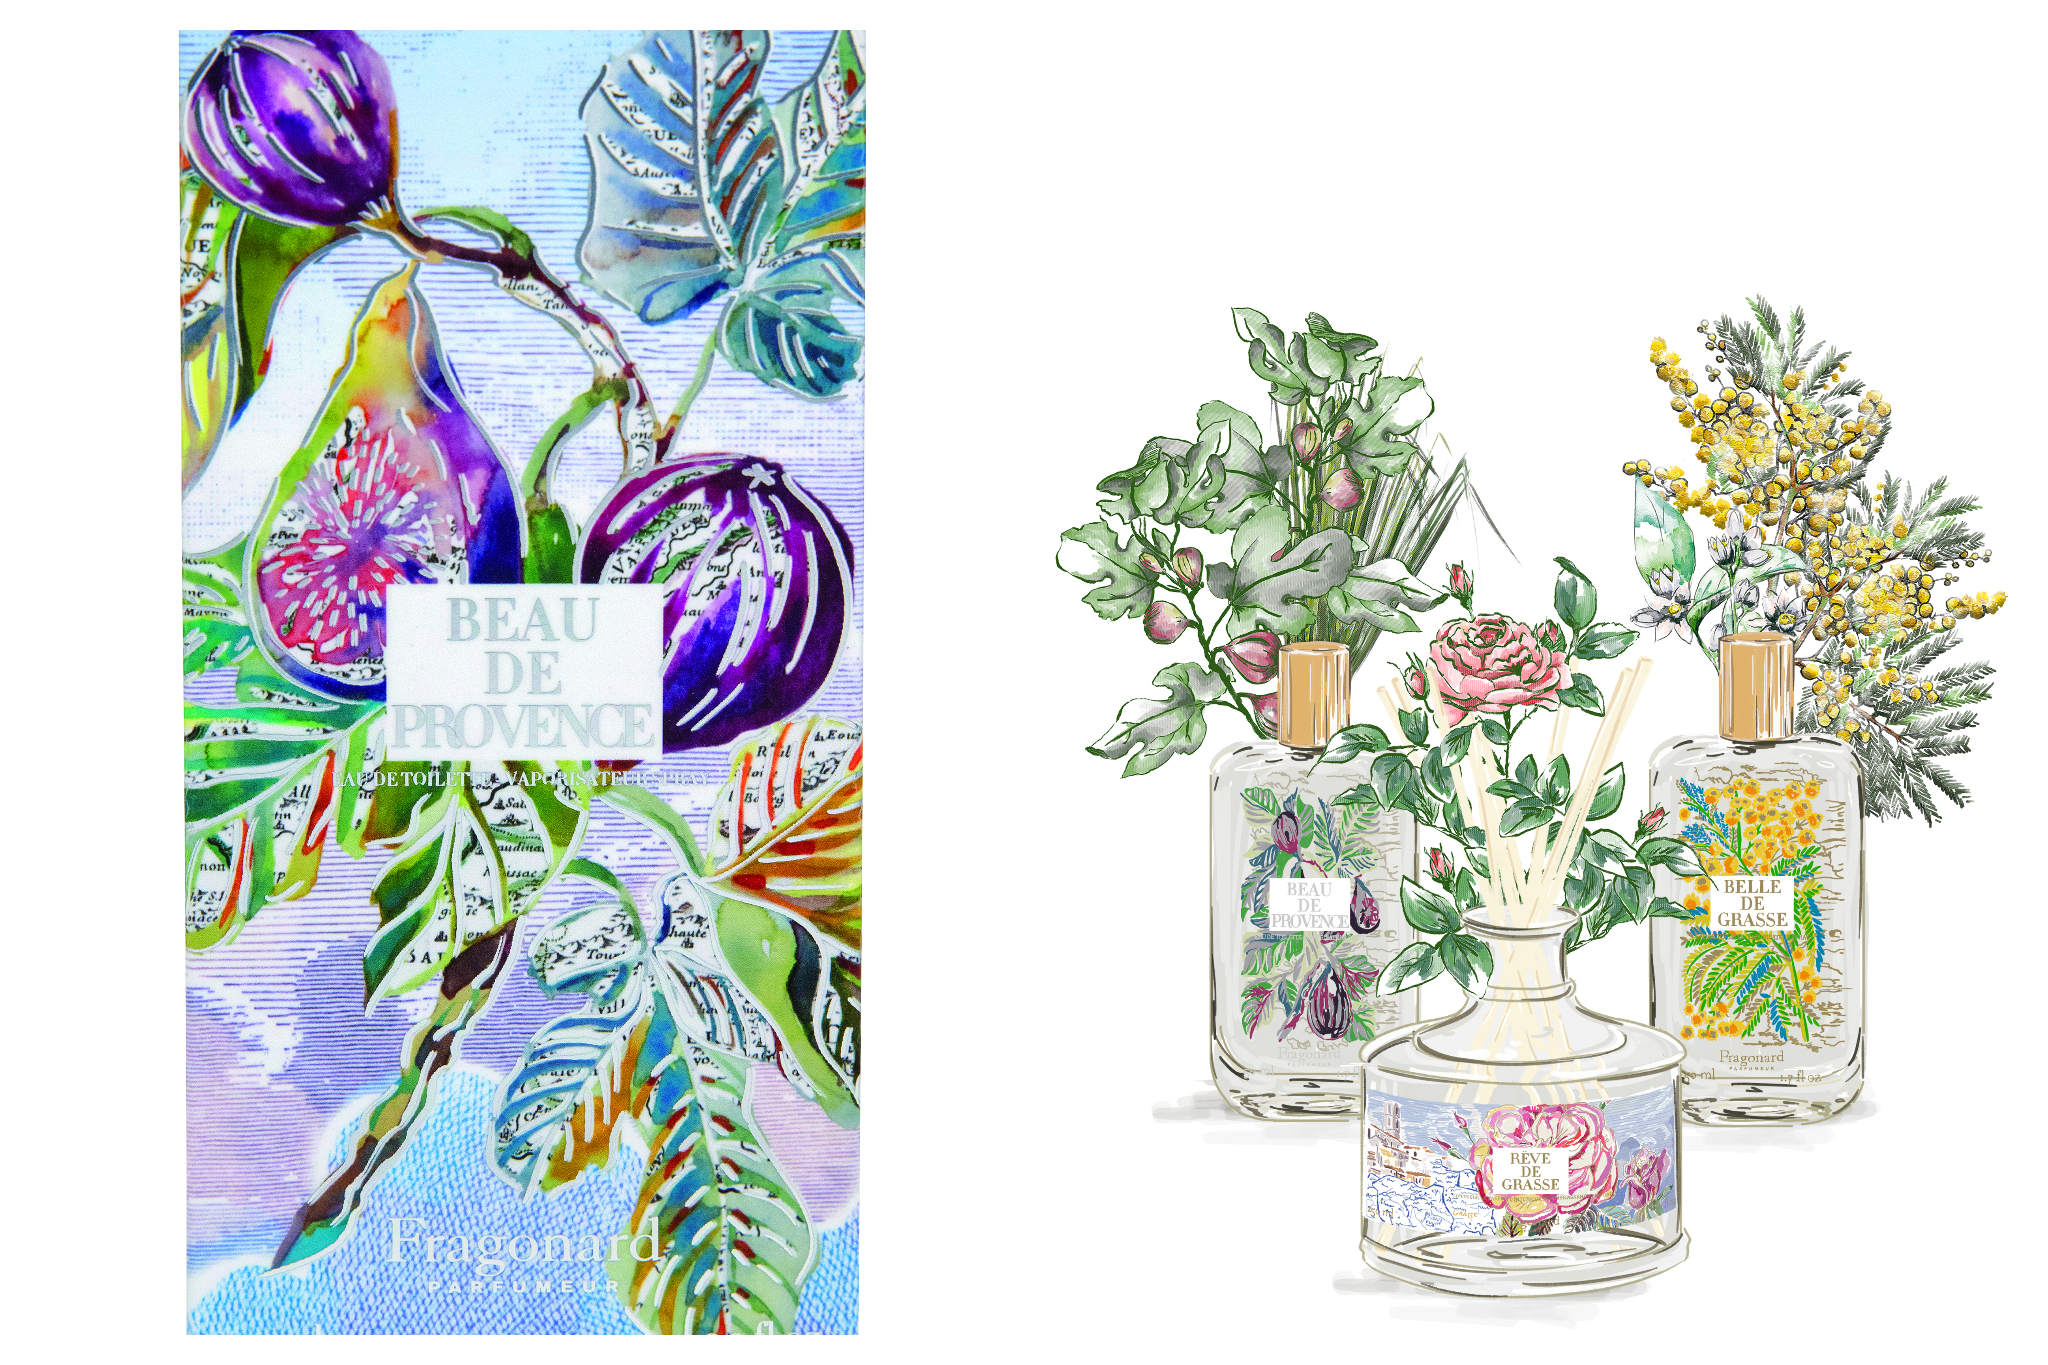 Beautiful colorful artwork displays flowers, plants, and Fragonard products such as Rêve de Grasse and Beau de Provence perfumes